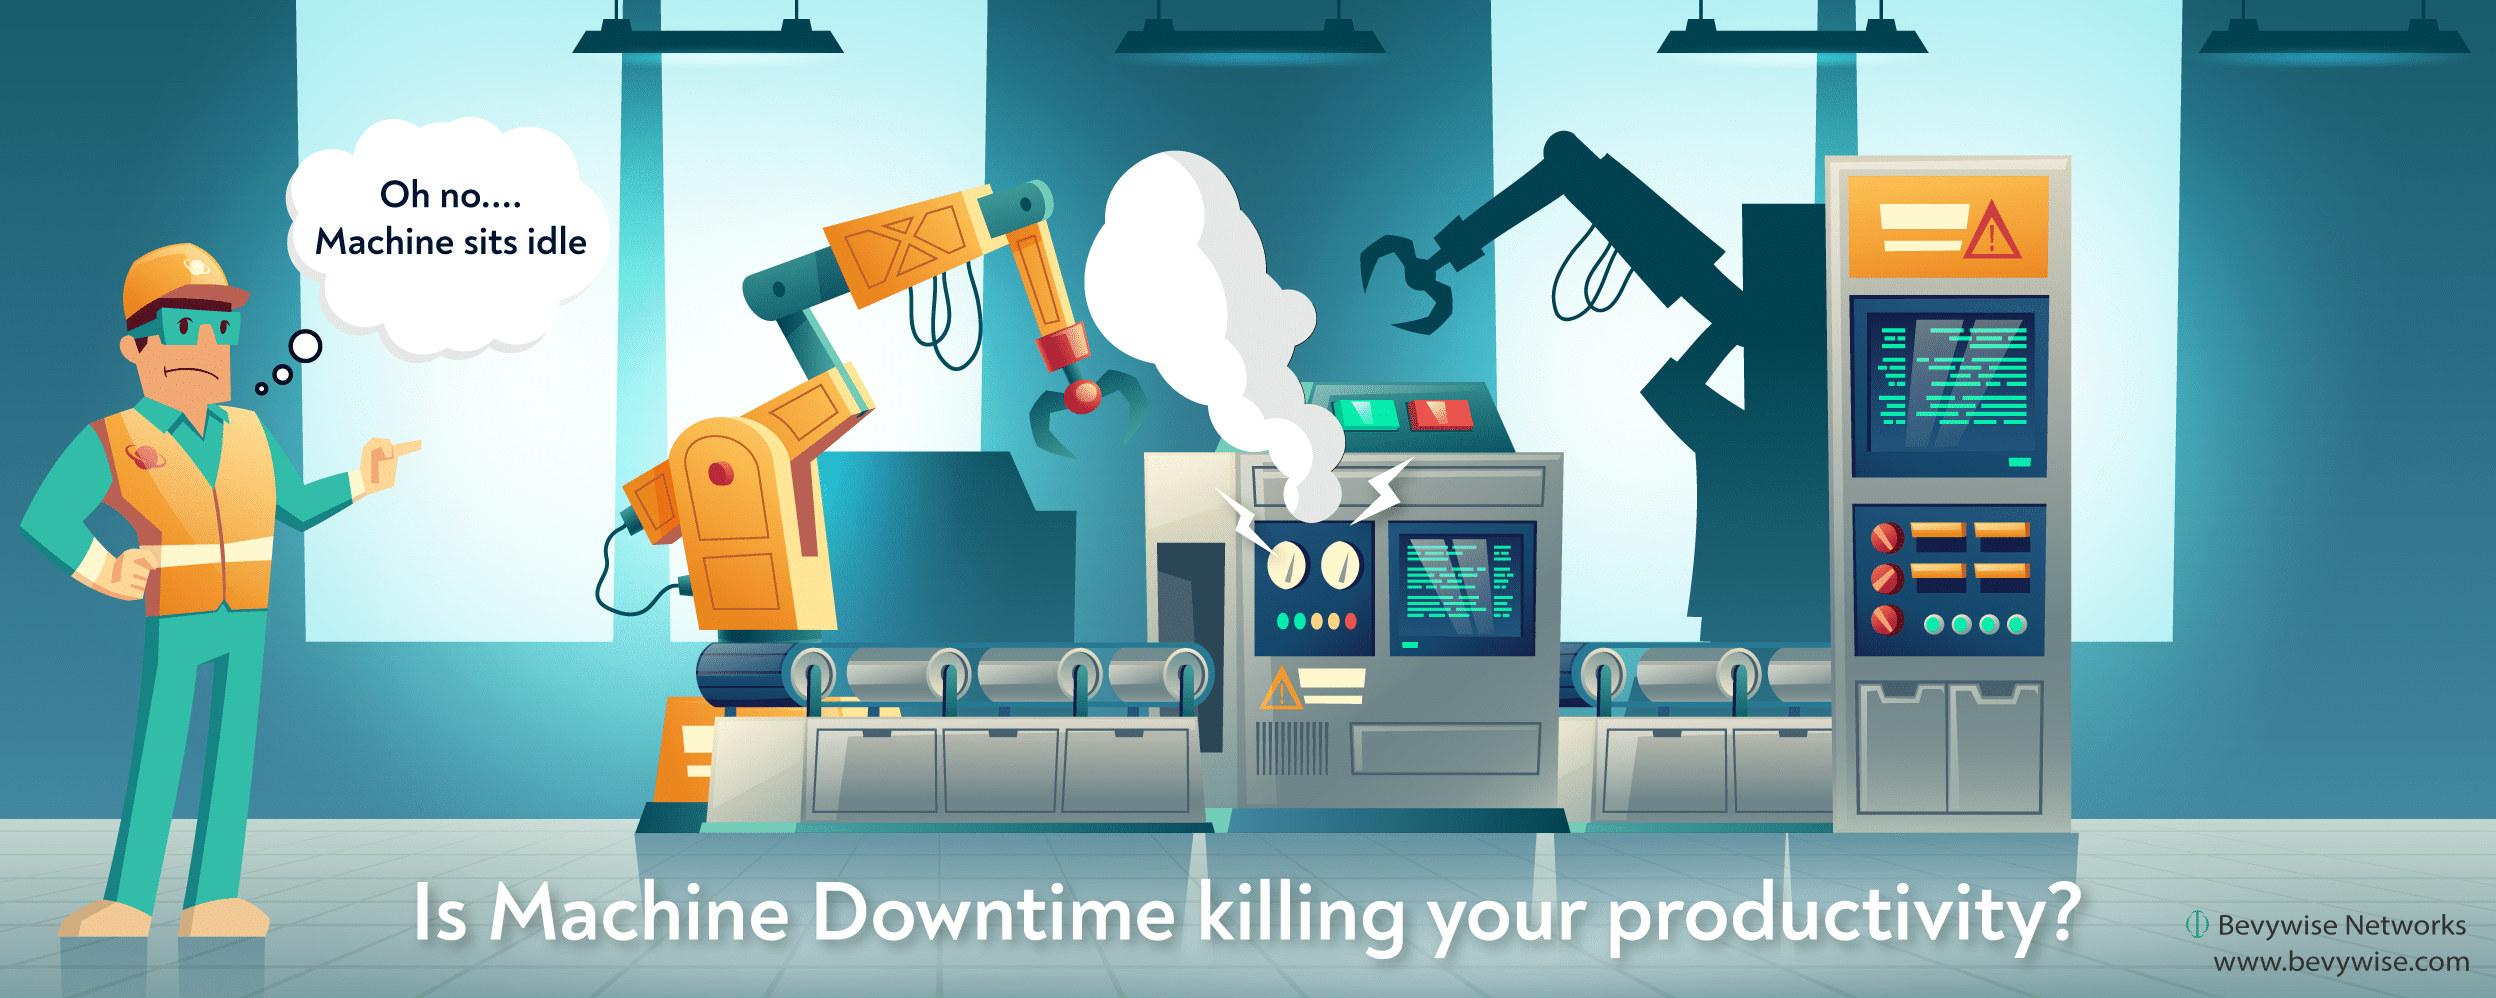 manufacturing downtime